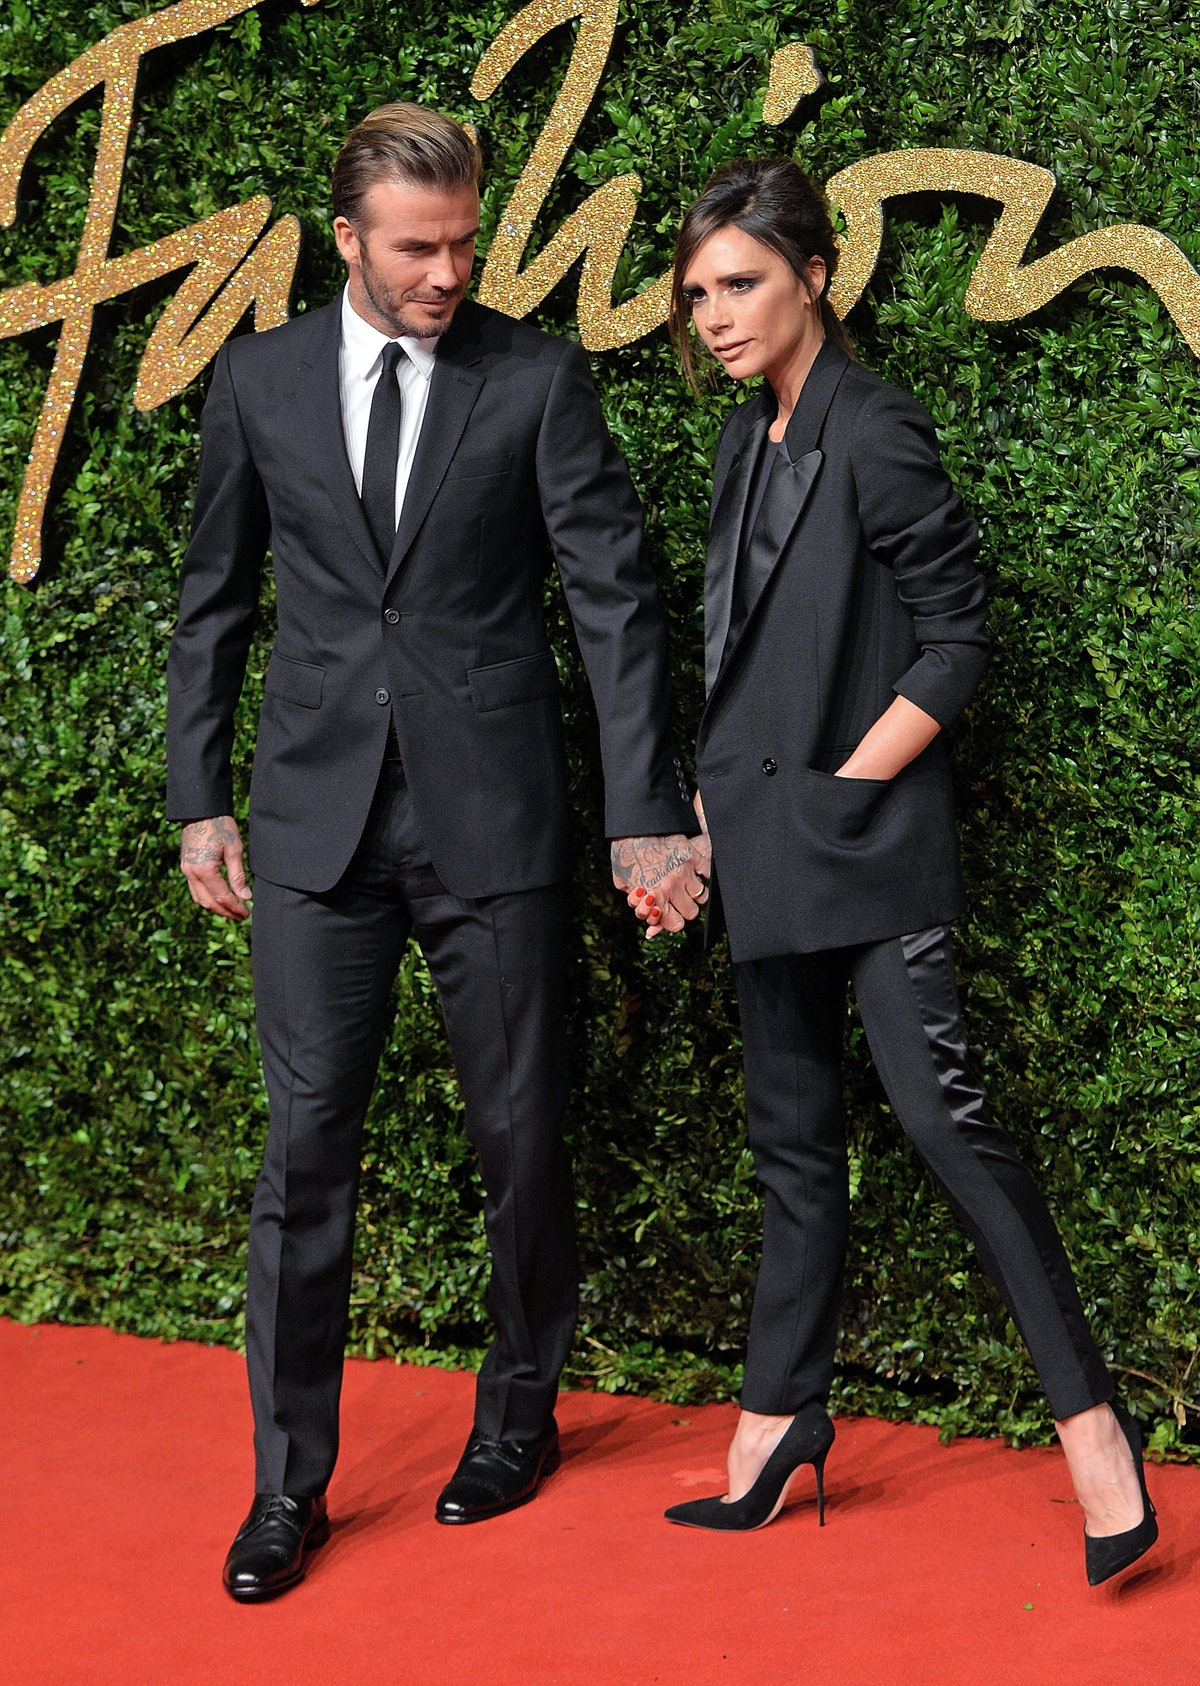 David and Victoria Beckham Did Their First Red Carpet Appearance Together in Almost 3 Years 2